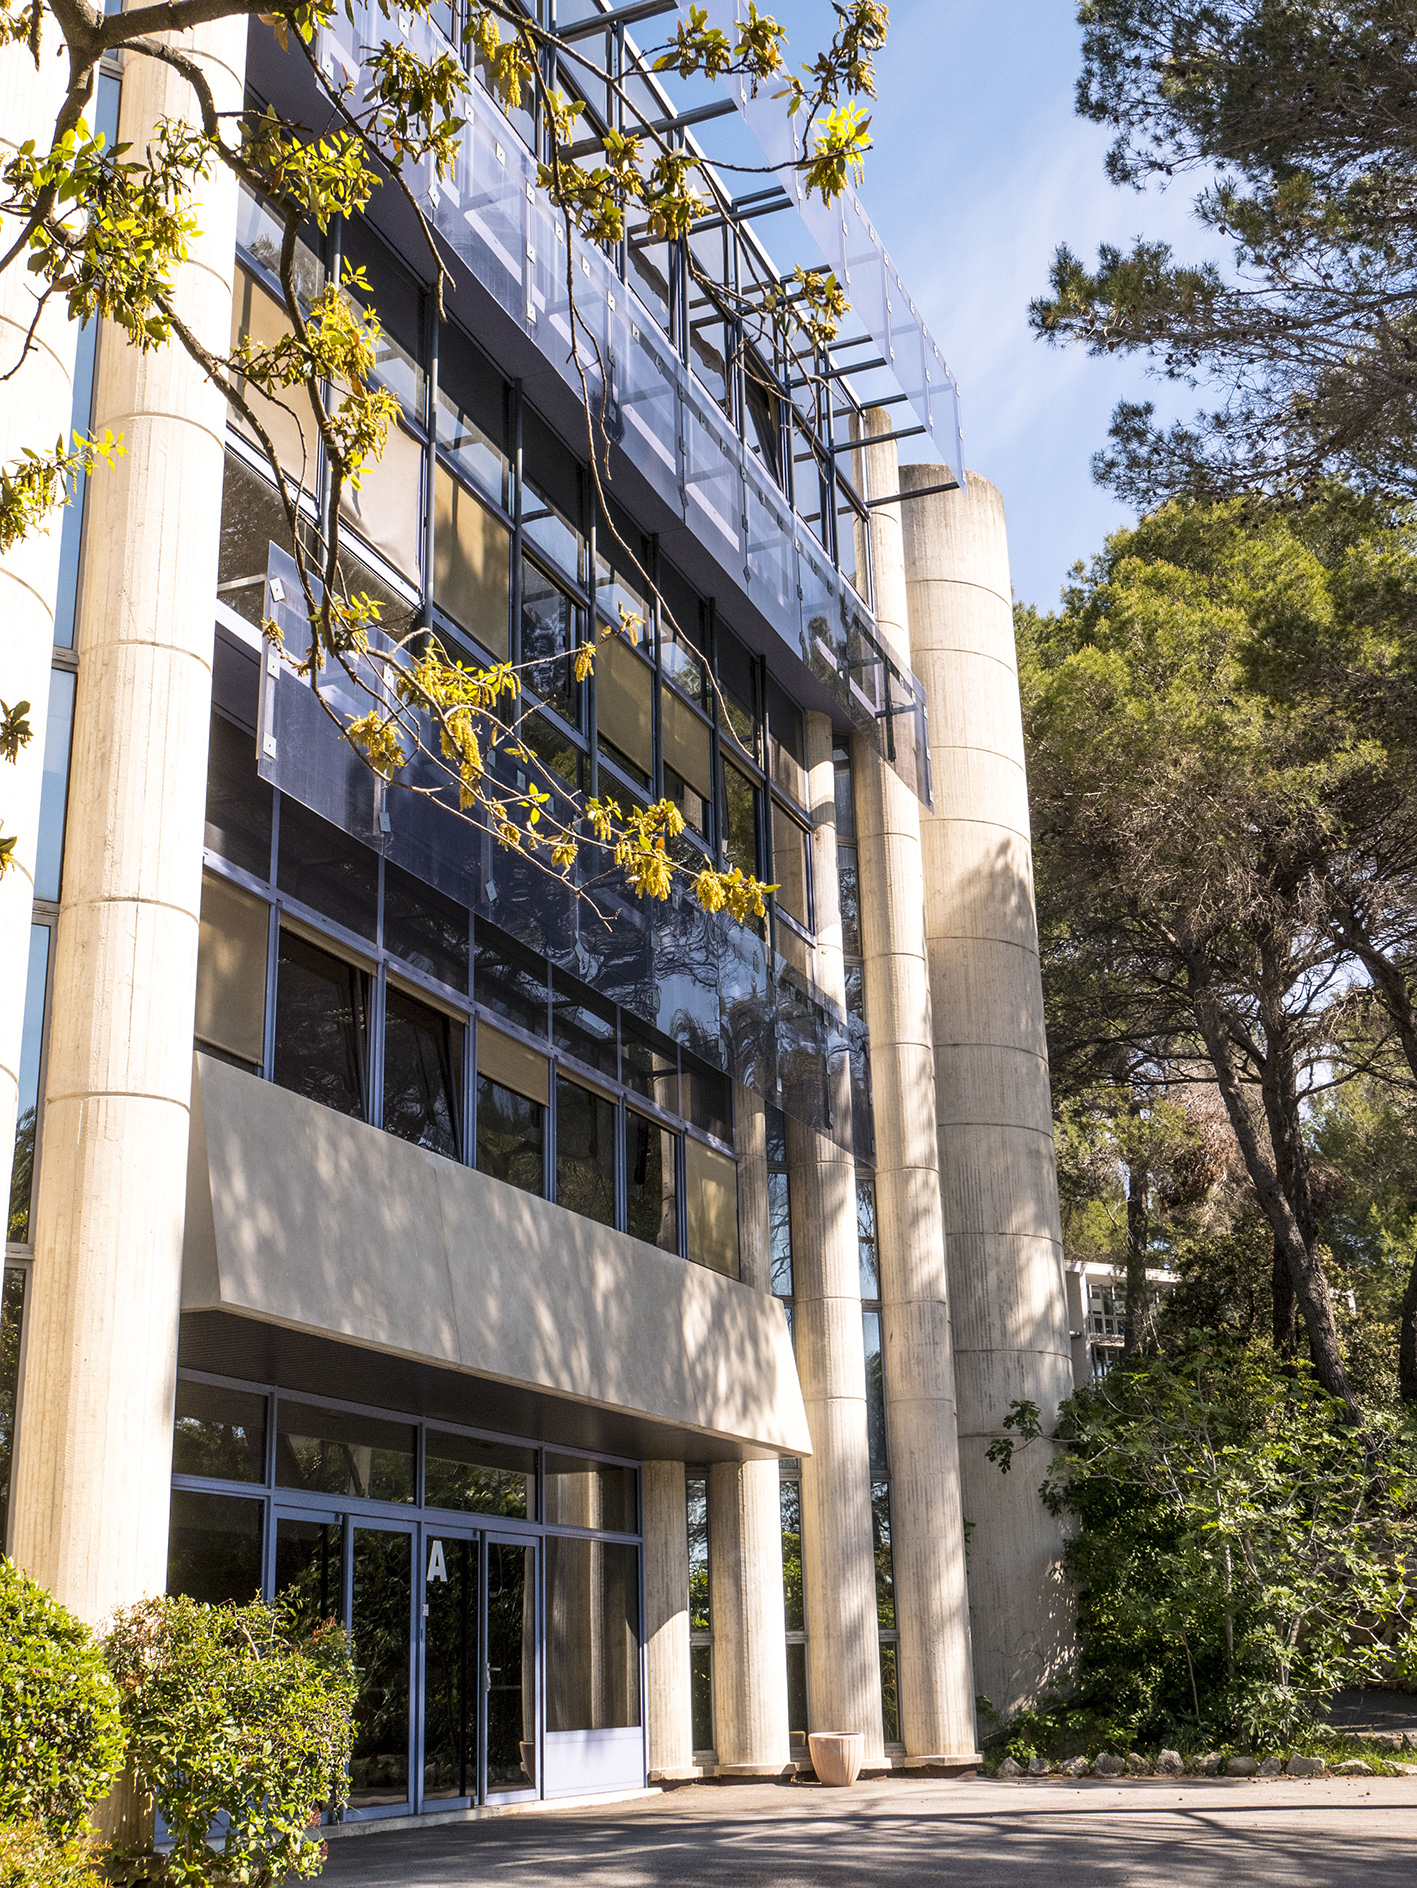 Building of MINES ParisTech in Sophia Antipolis campus